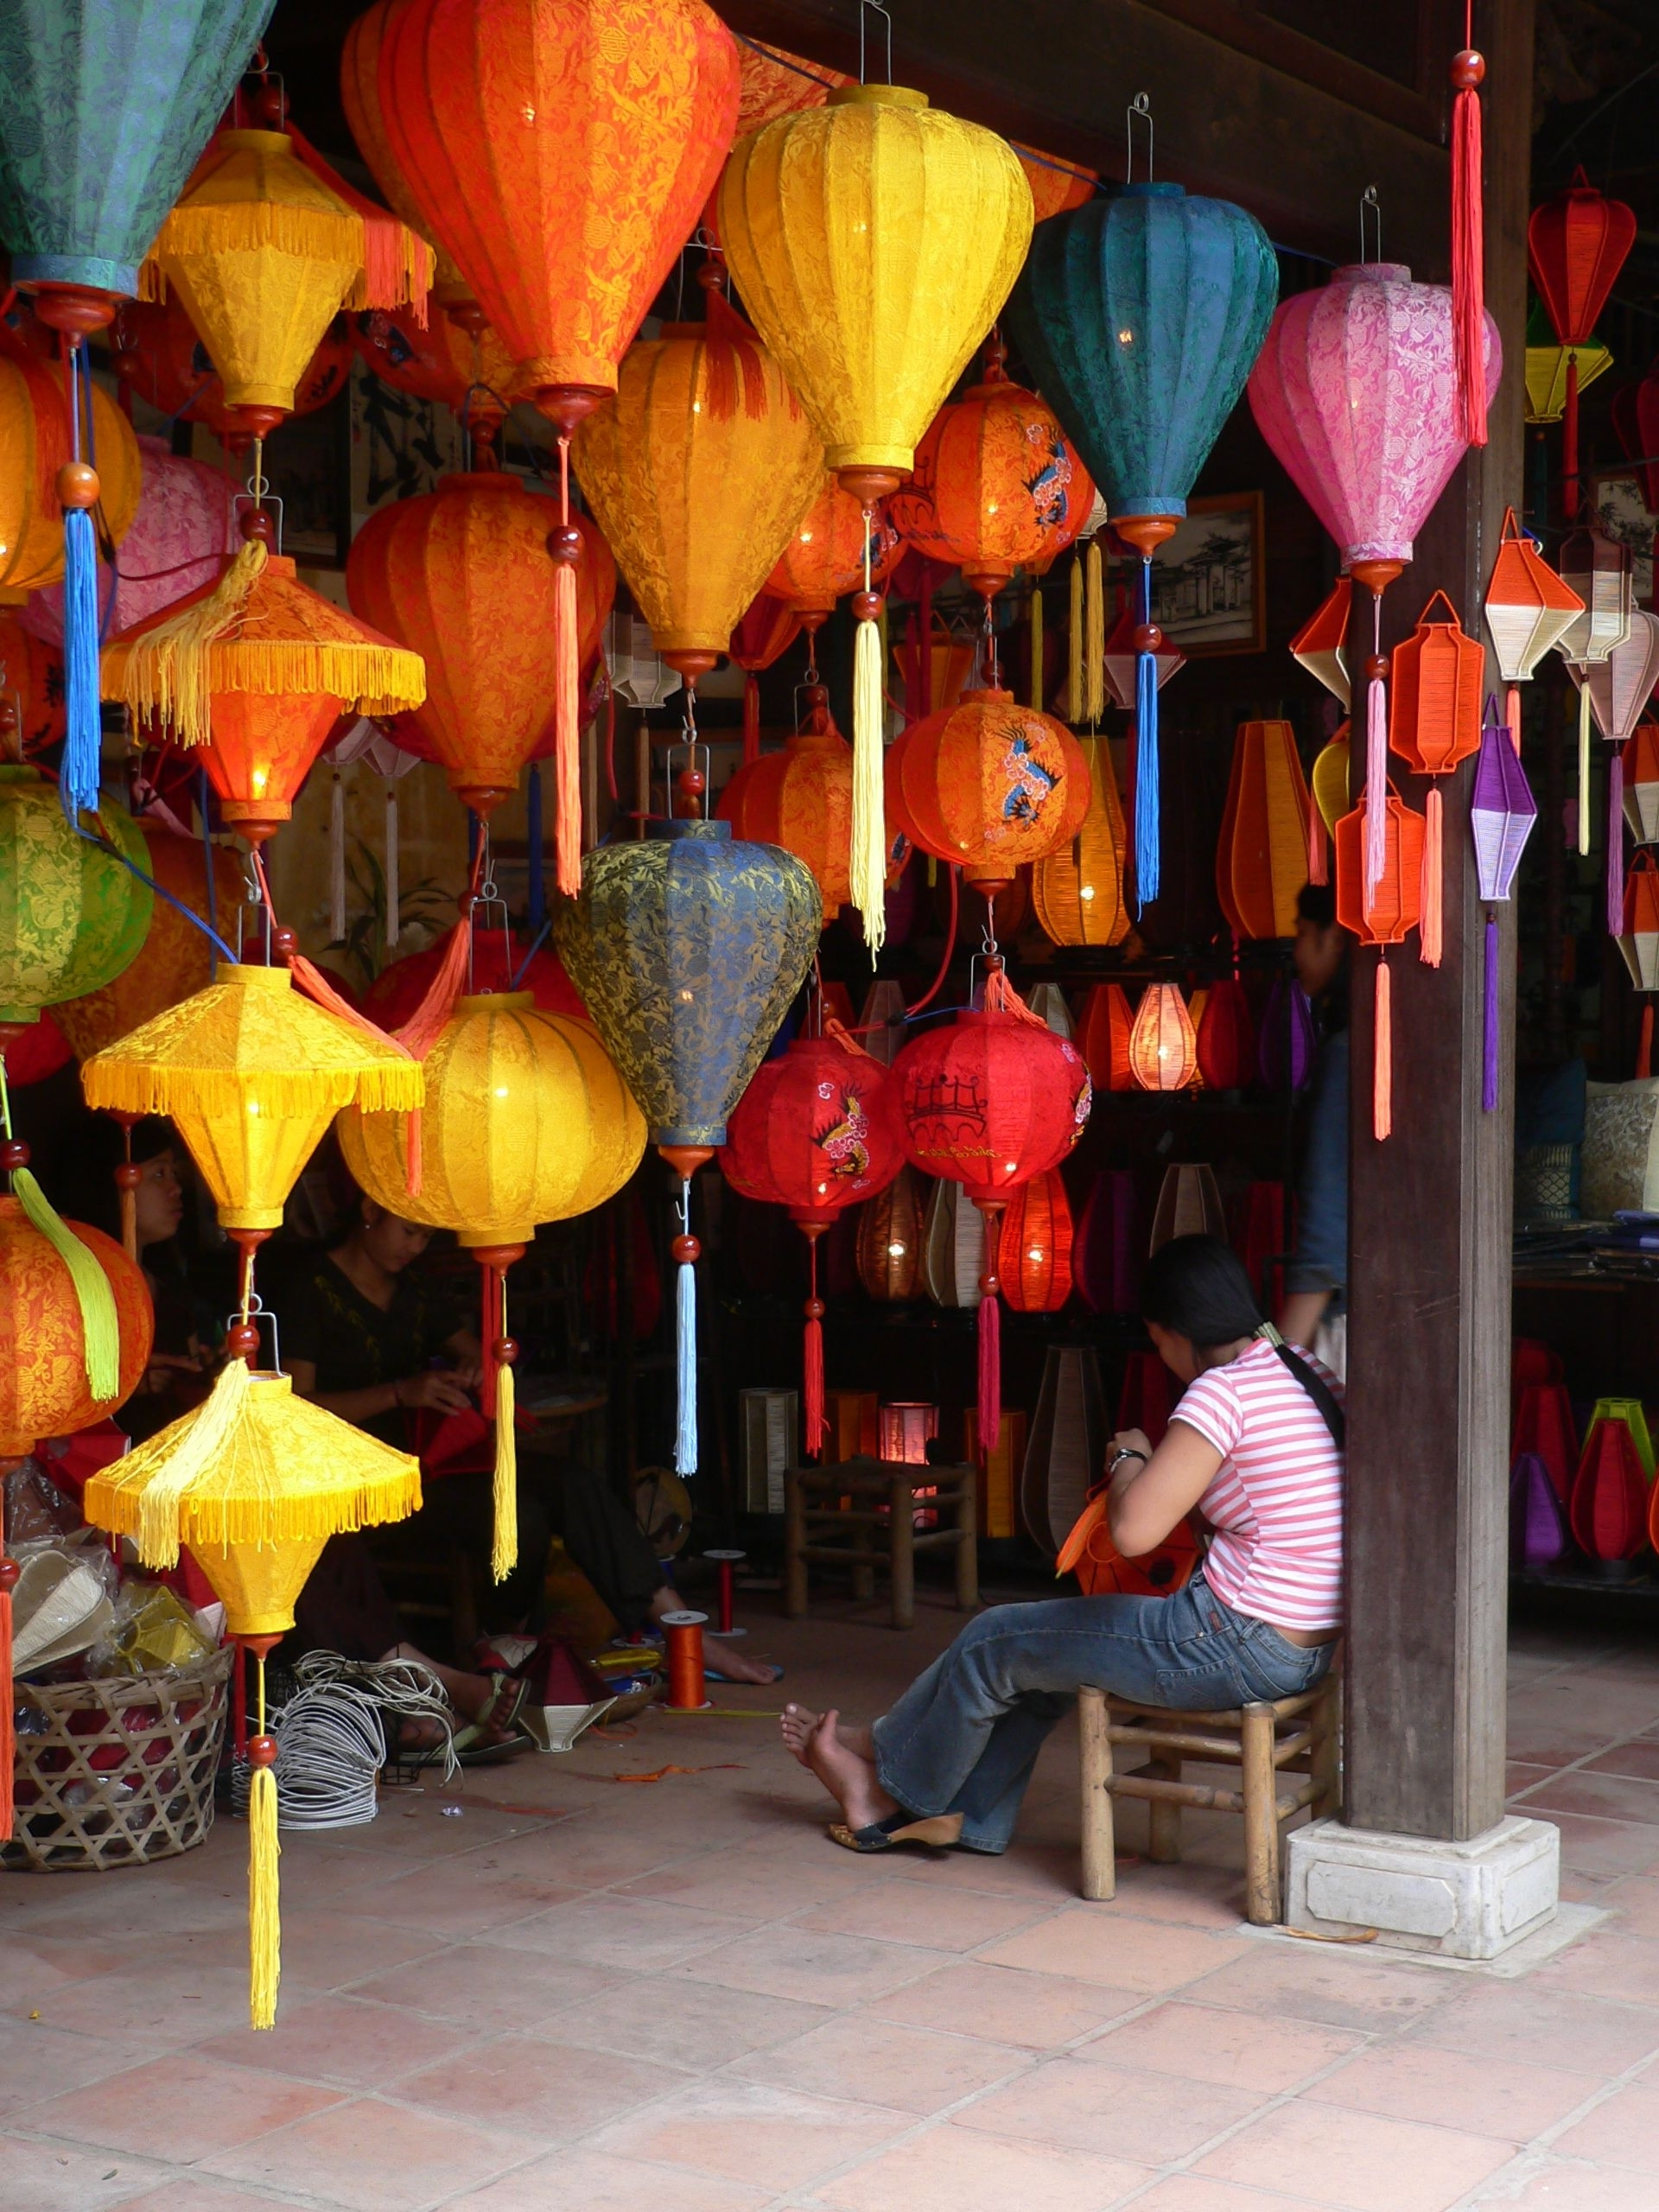 Vietnam With Regard To Current Outdoor Vietnamese Lanterns (View 19 of 20)